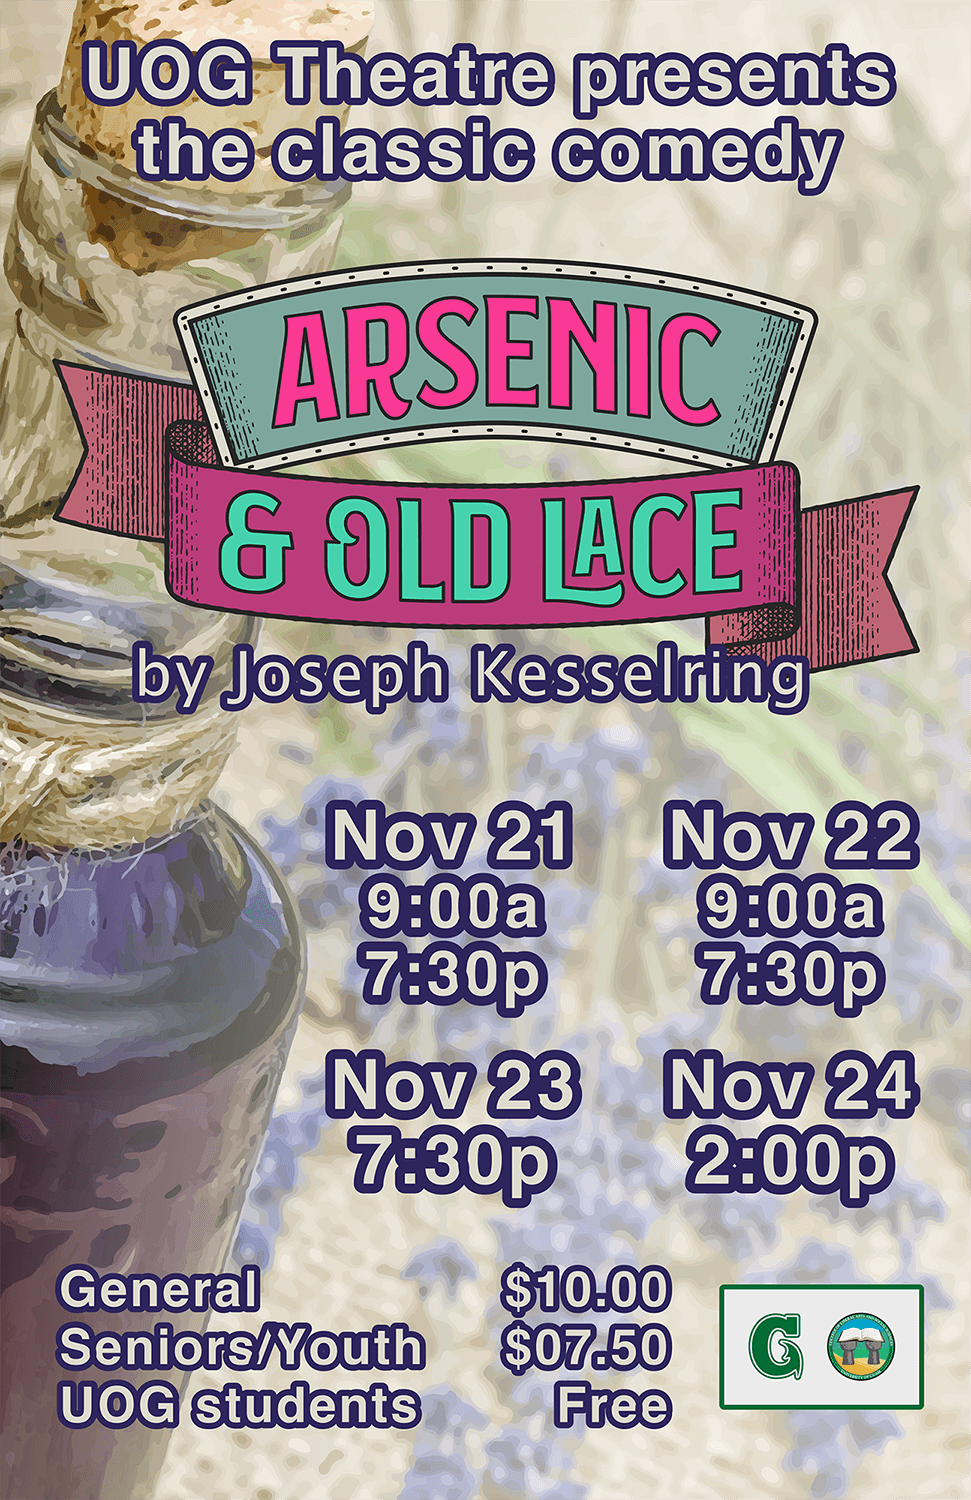 UOG Theatre presents: Arsenic and Old Lace